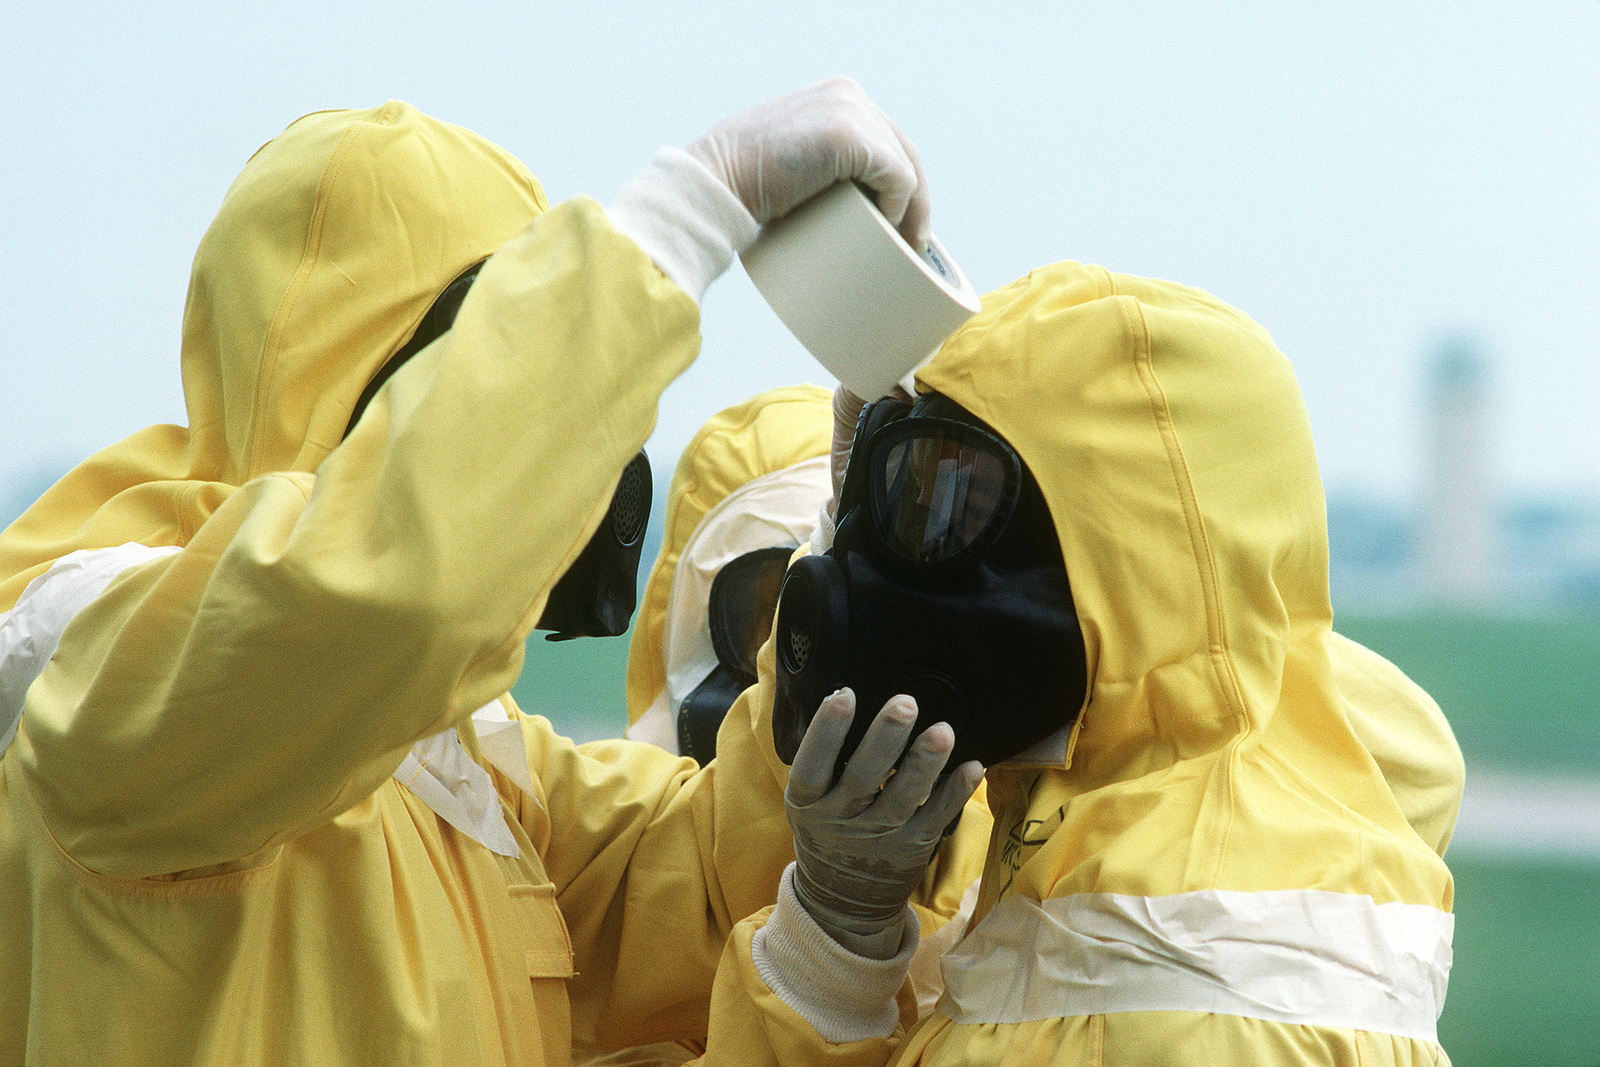 Members of the Disaster Response Force use masking tape to seal any vulnerable areas of their nuclear-biological-chemical (NBC) protective suits as they participate in Exercise GLOBAL SHIELD at the Strategic Air Command (SAC) headquarters